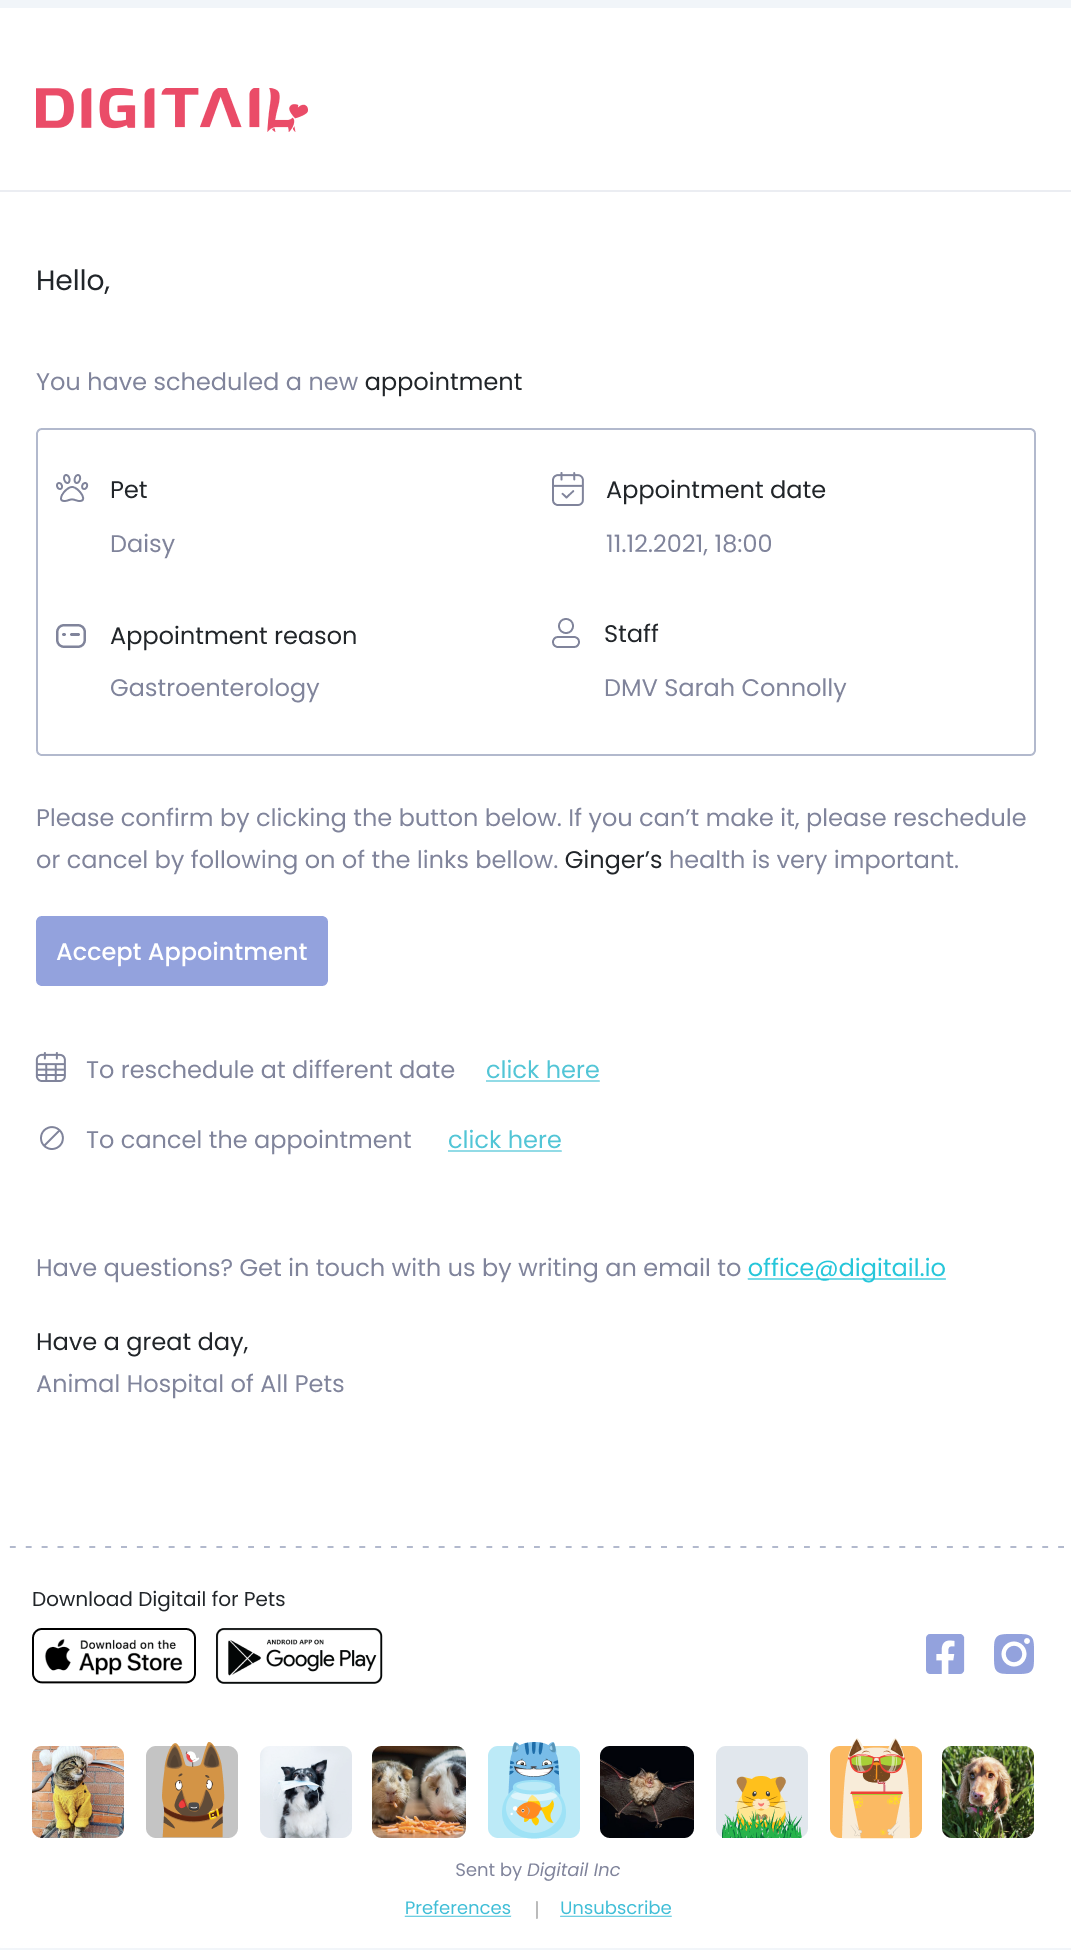 Your clients get instant notifications when you create a new appointment or when you reschedule. Define your reminders preferences by customizing when you want to send them (how much time before the due date) and on which channel (email, SMS, or in-app)